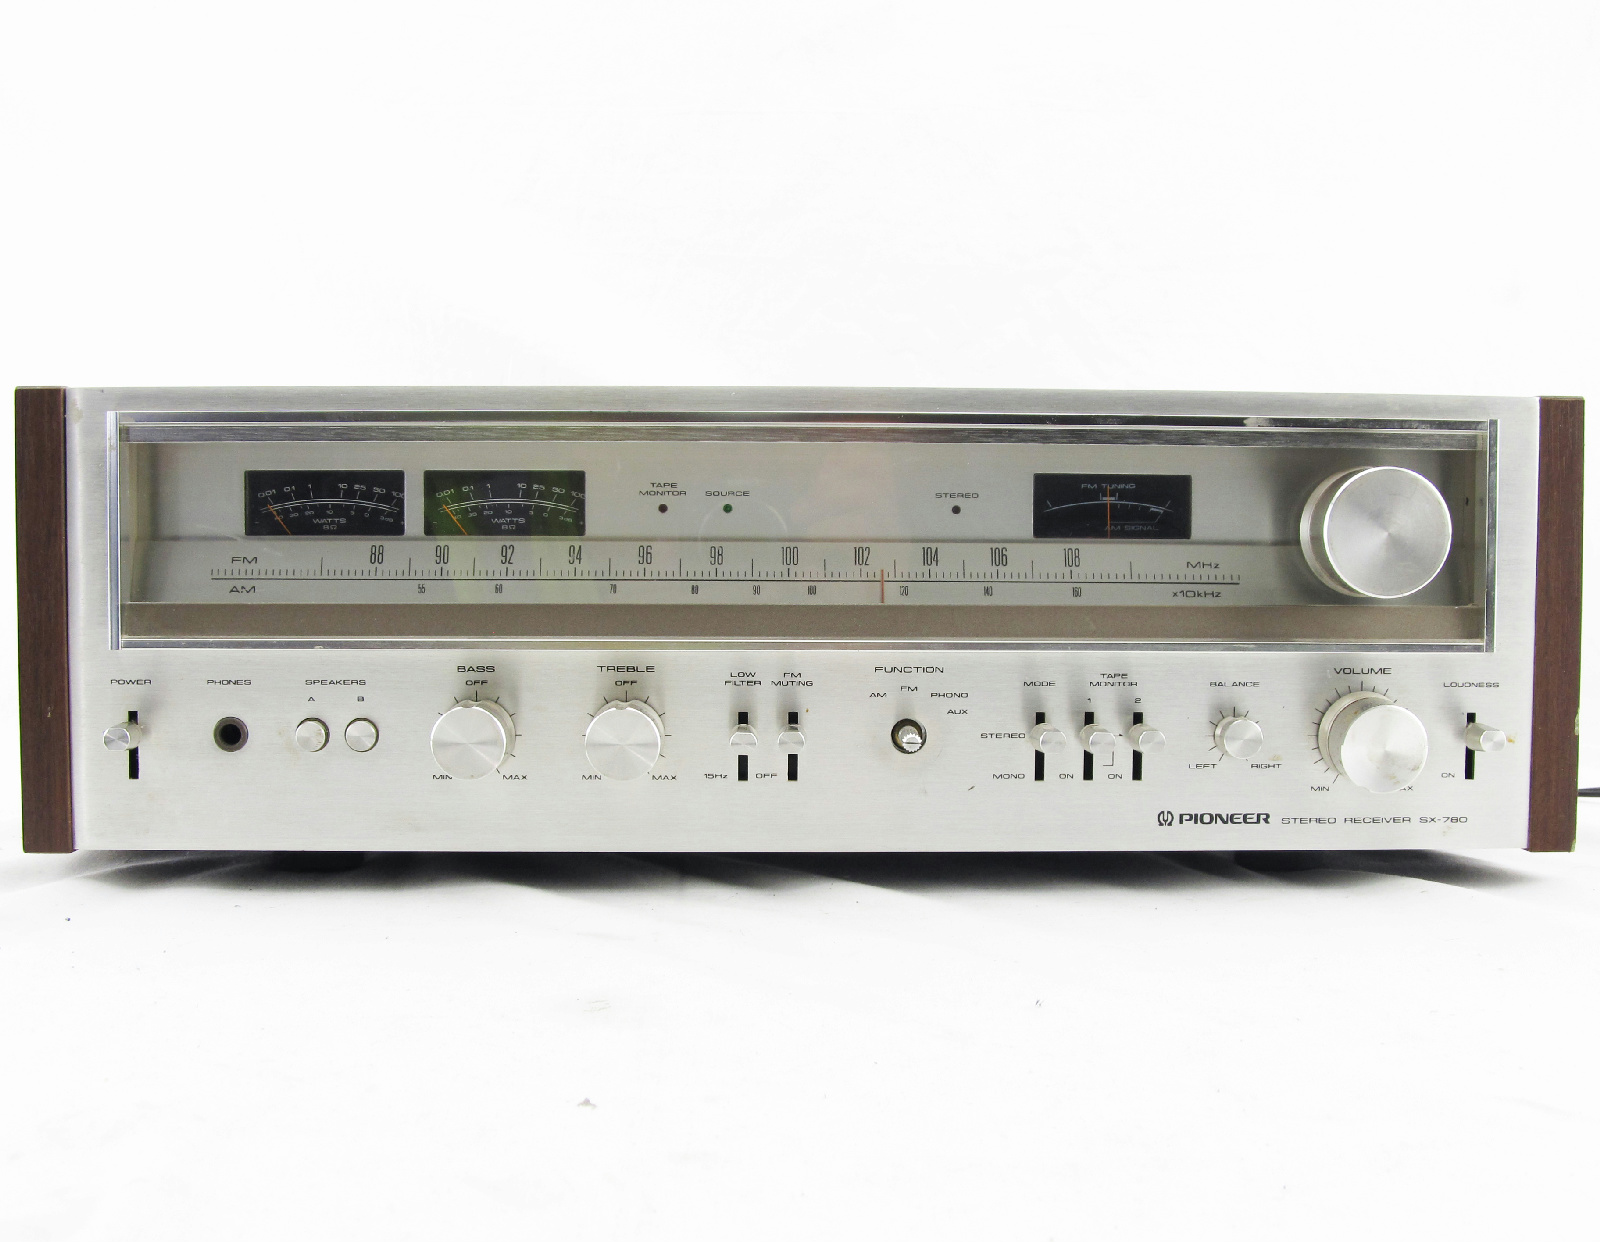 pioneer stereo receiver test house electrical wiring diagram circuit pdf home design ideas vintage sx 780 am fm ebay